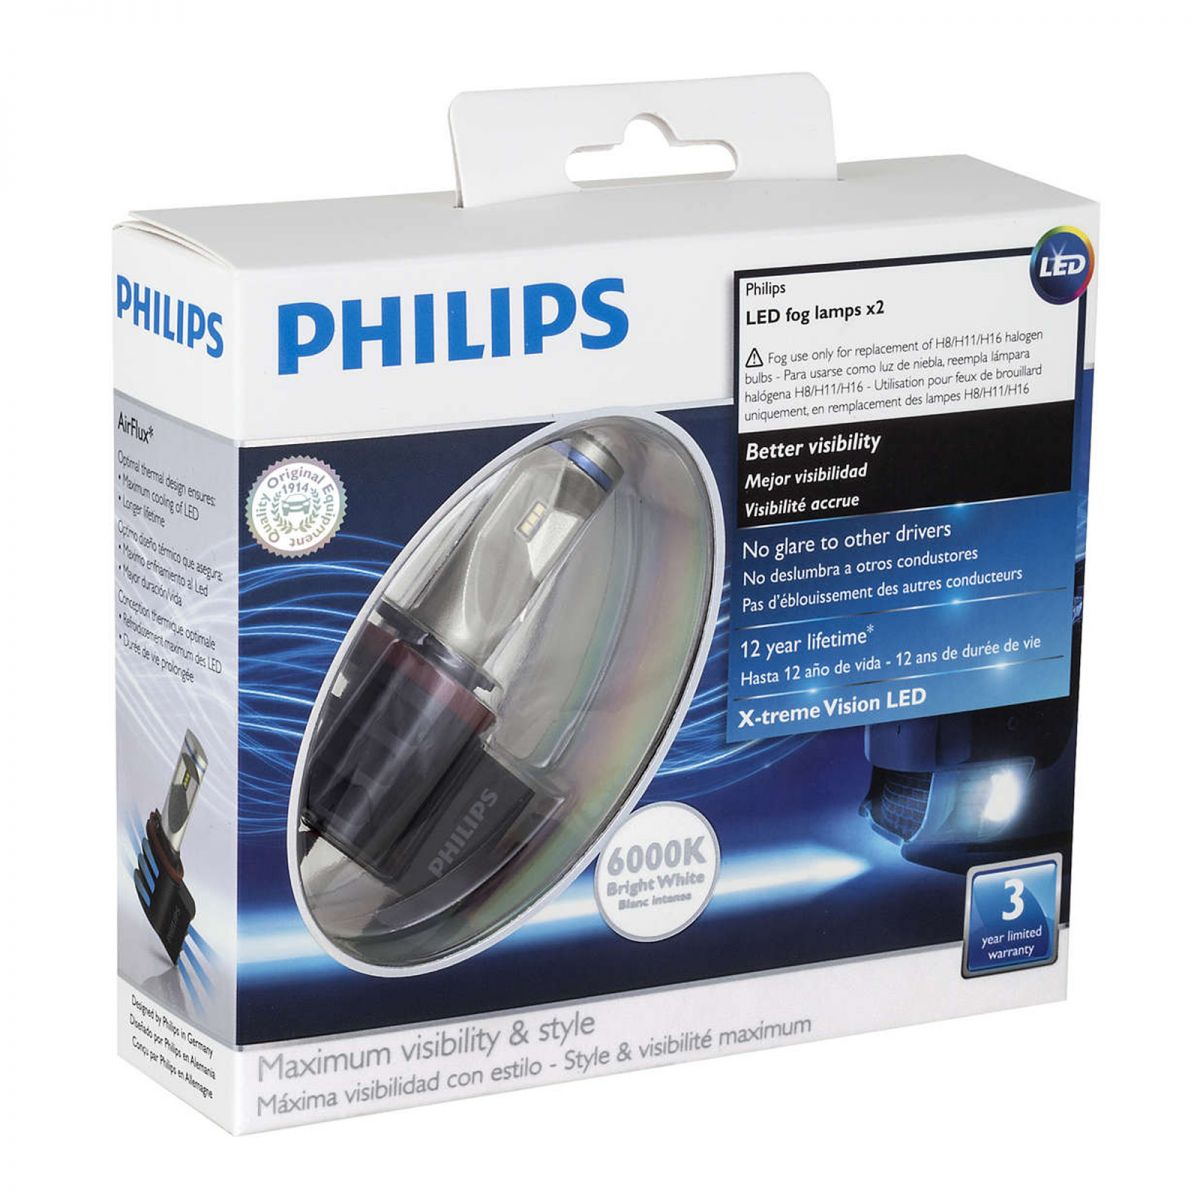 ampoule gu10 led philips top philips decoled w gu blue bleu with ampoule gu10 led philips free. Black Bedroom Furniture Sets. Home Design Ideas